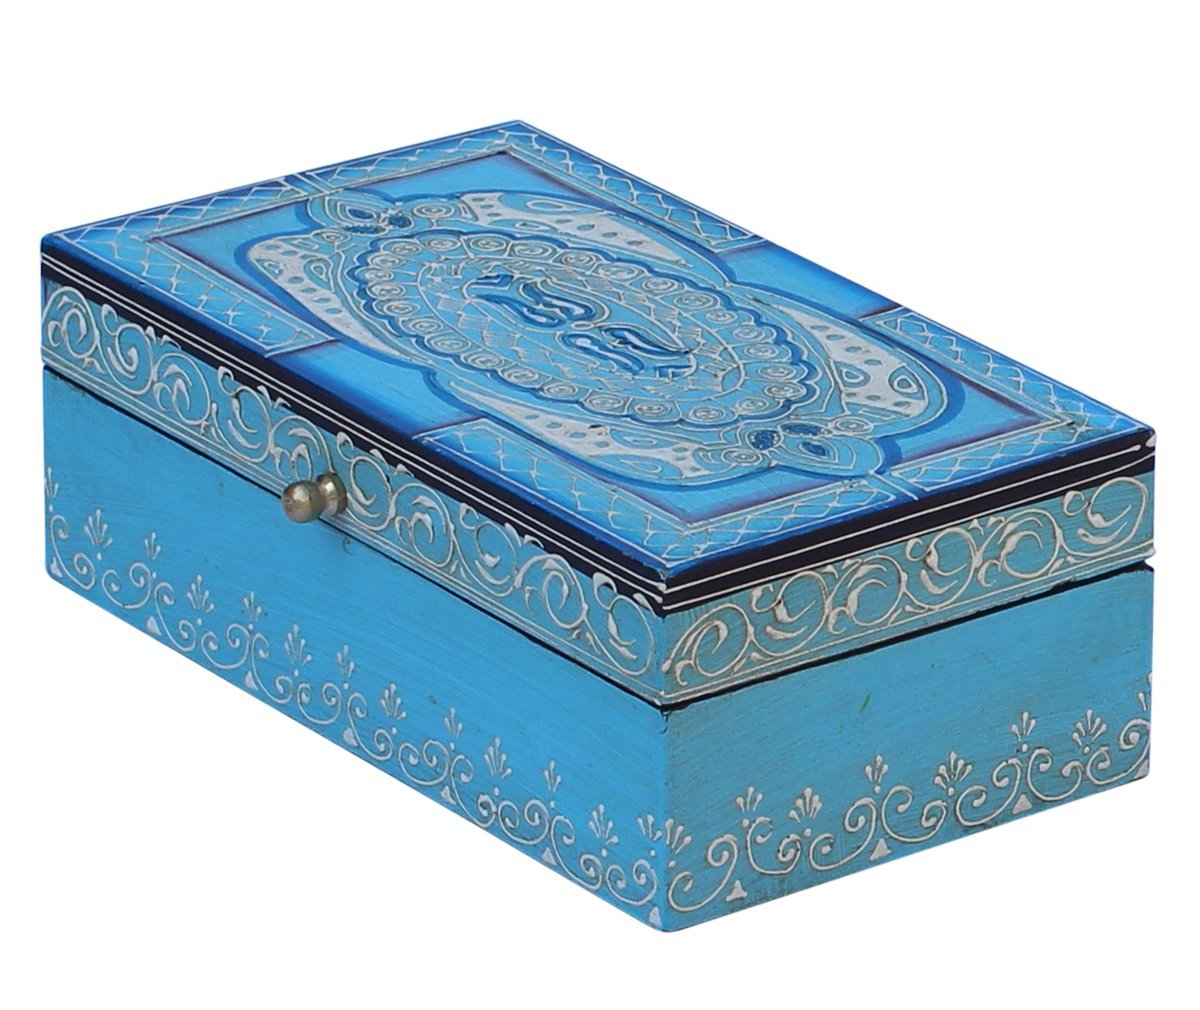 Wood Jewelry Box - Turquoise Blue